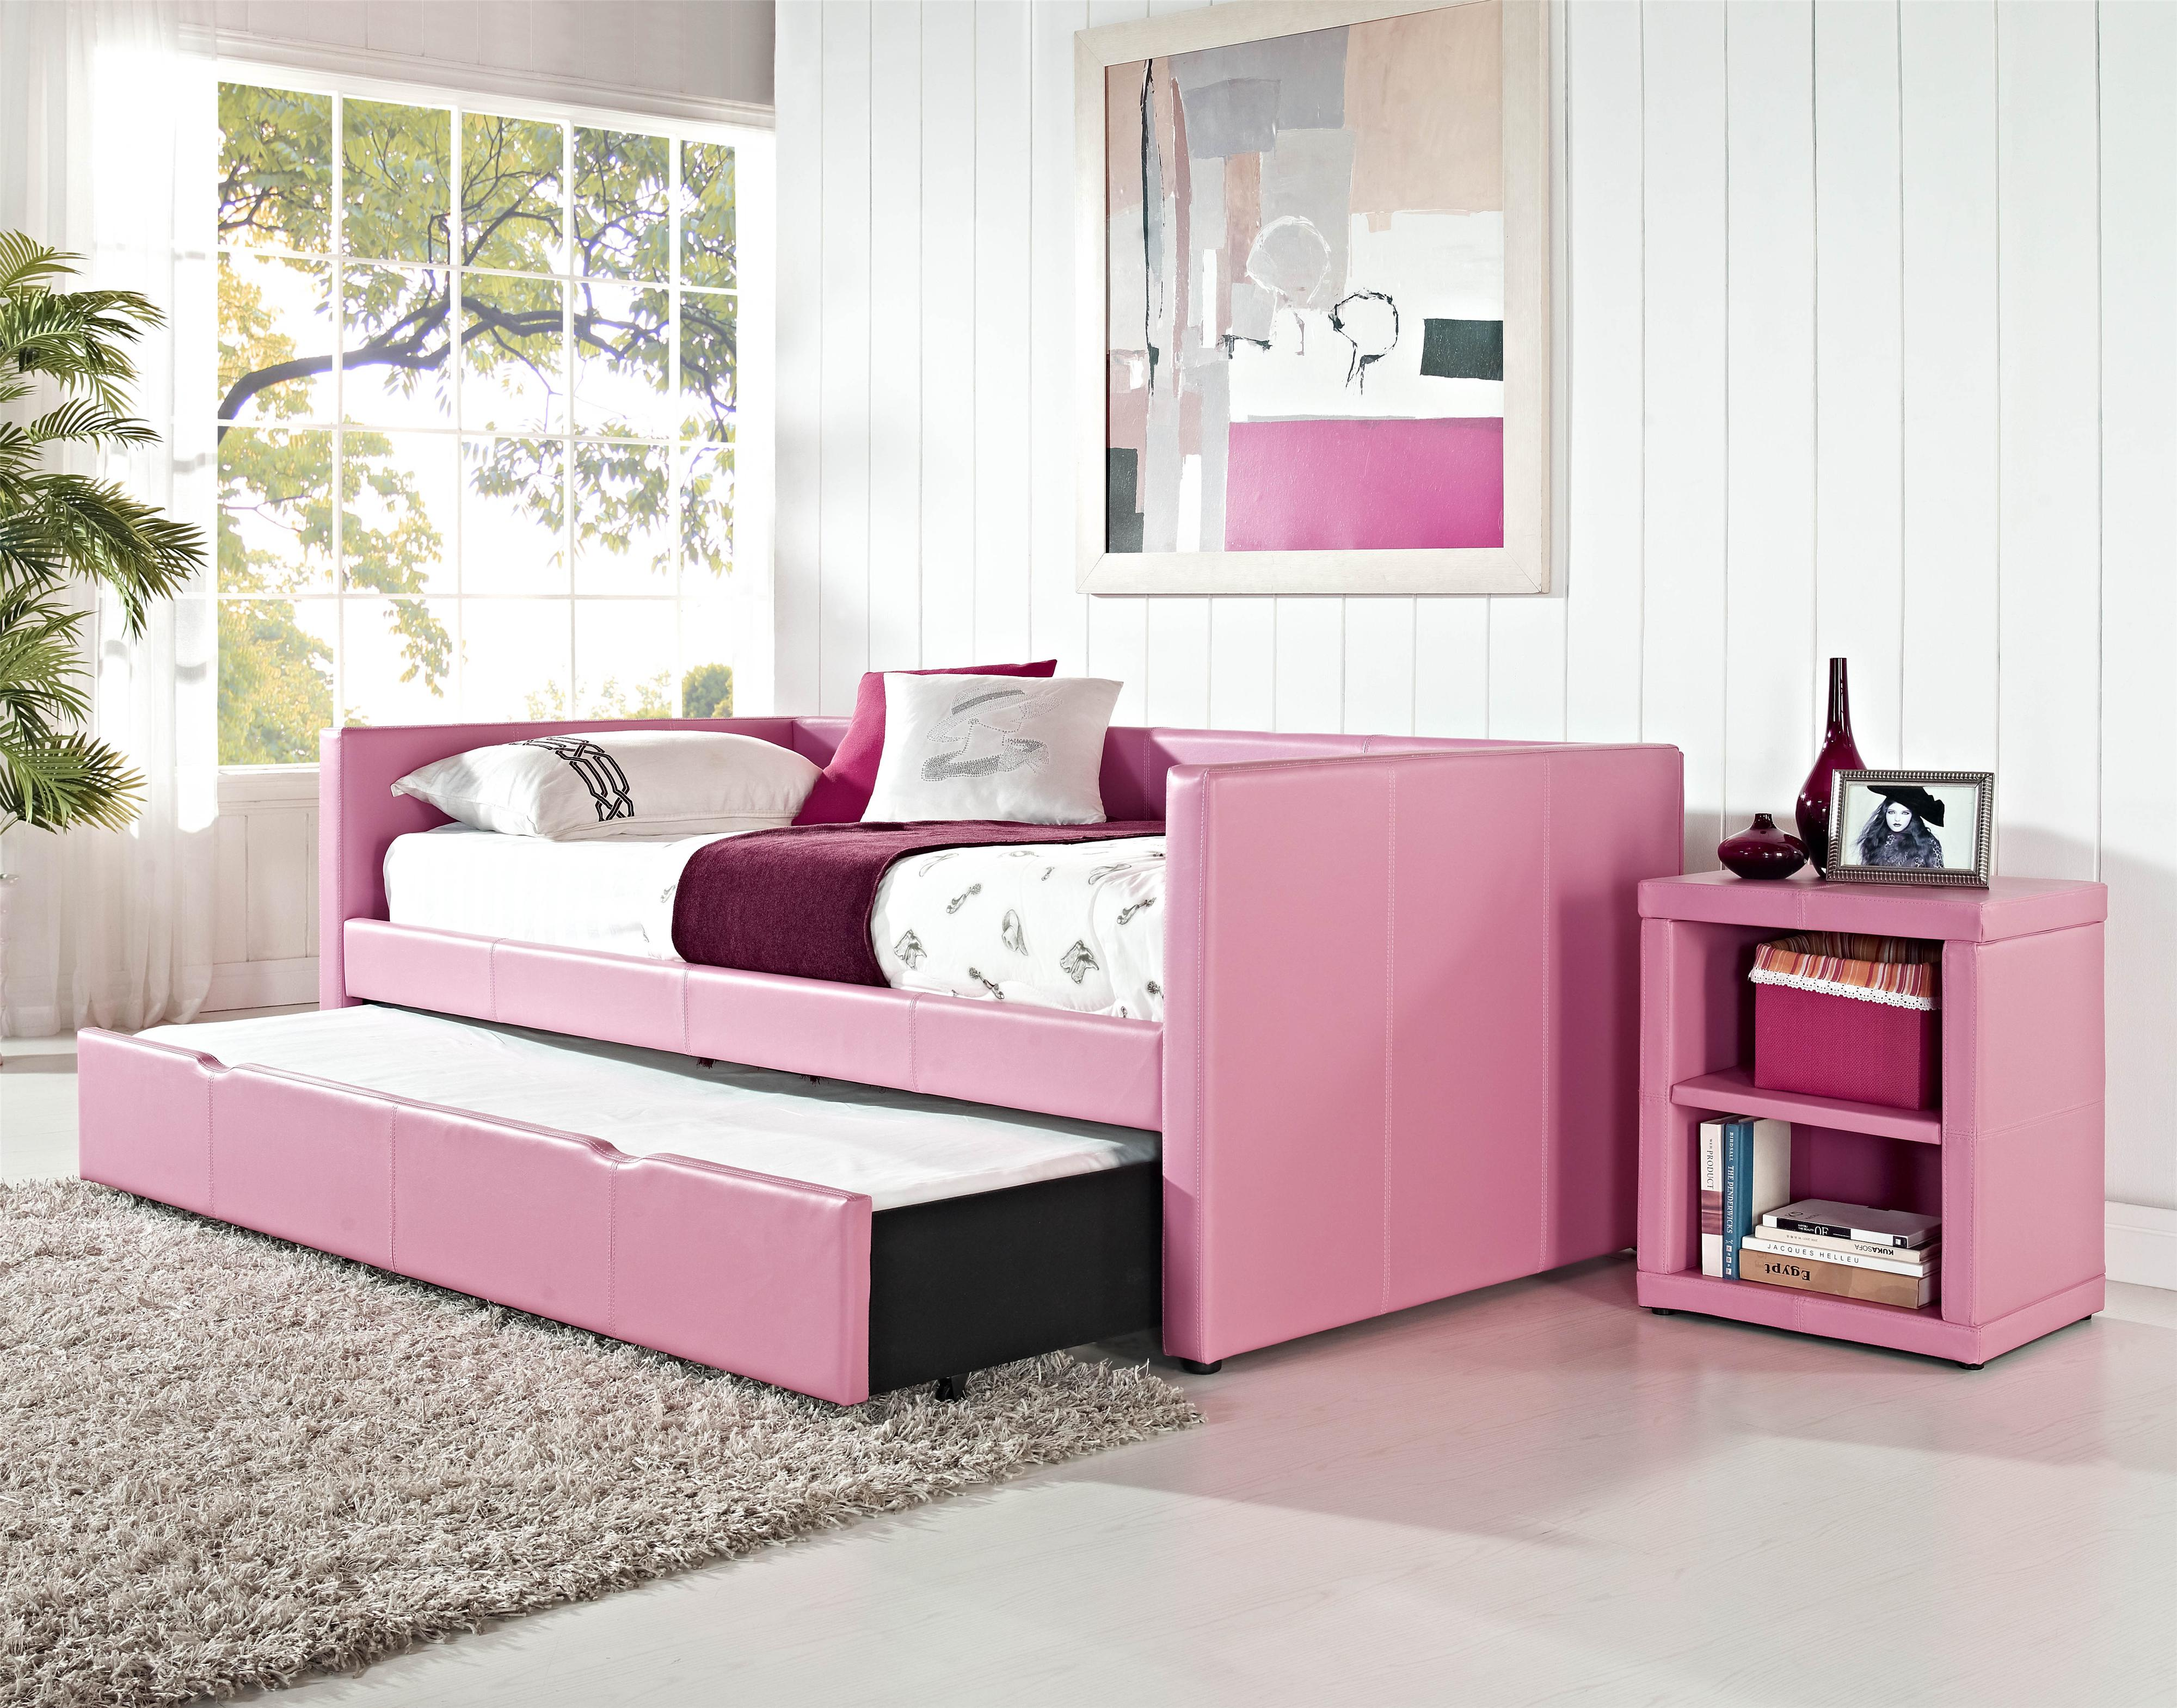 Single Daybed Bedroom Ideas